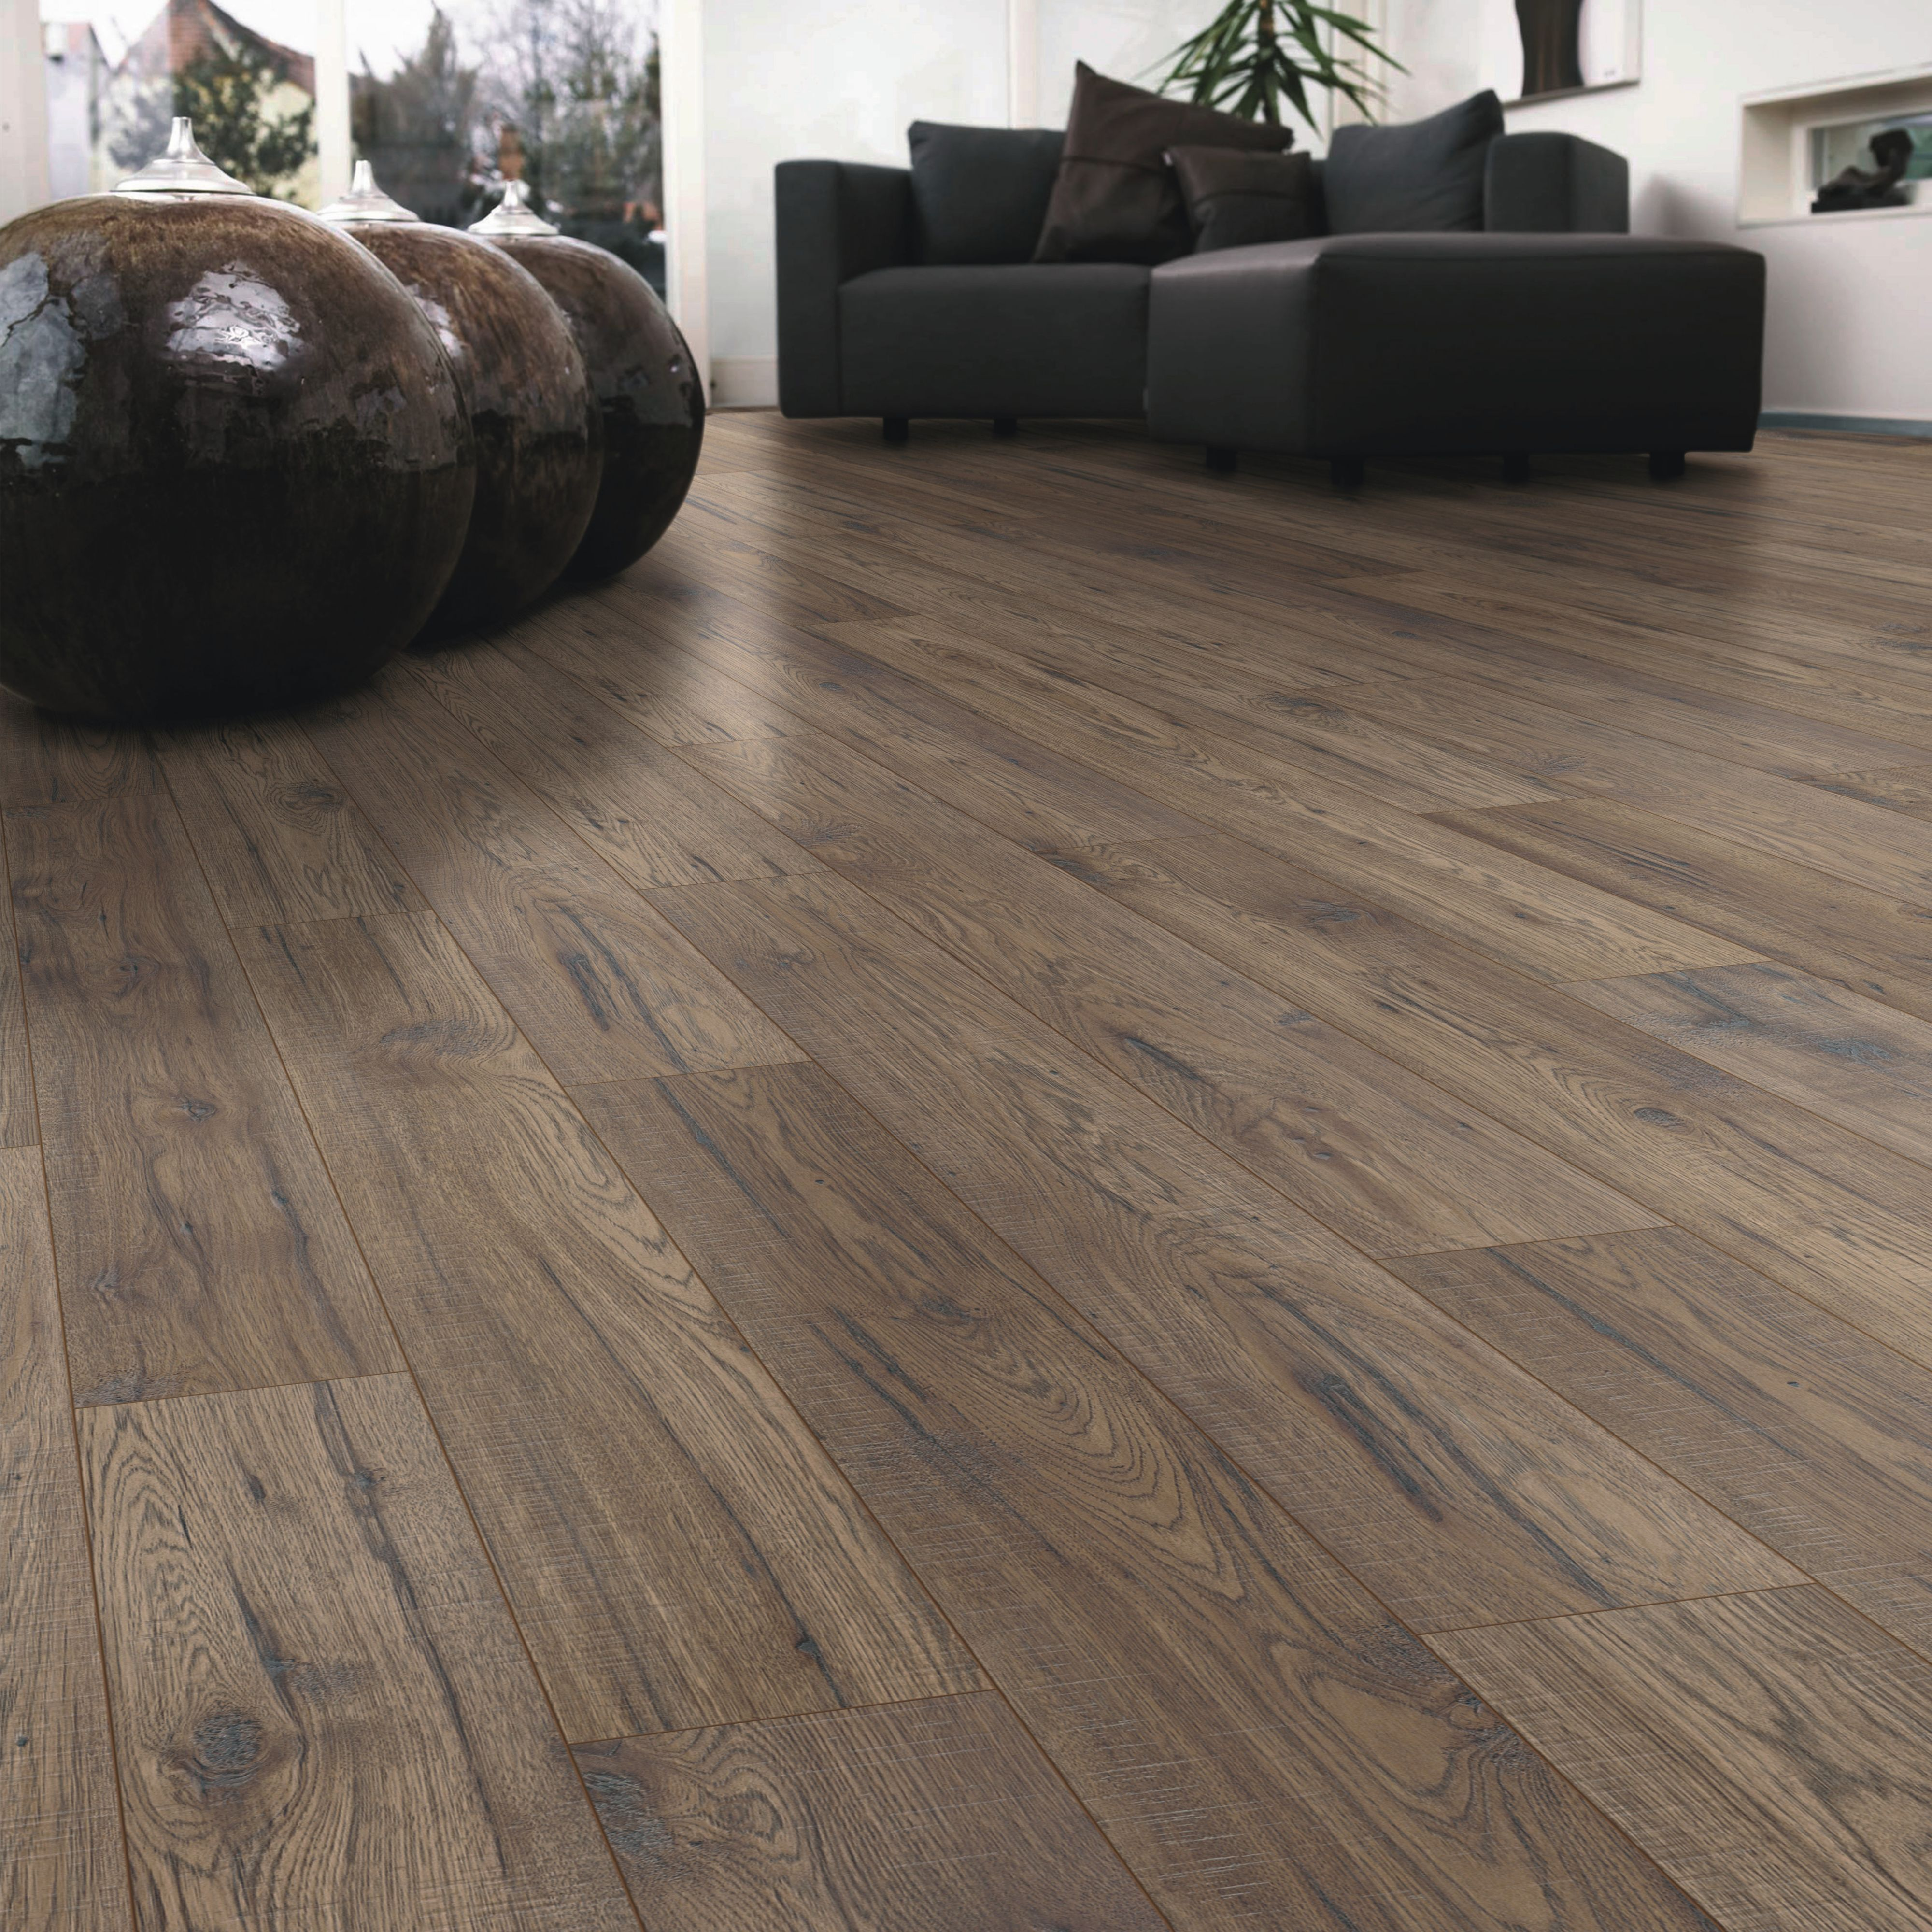 outlast pics gallery wood laminate apple allen pergo photo of cherry roth flooring floors and img